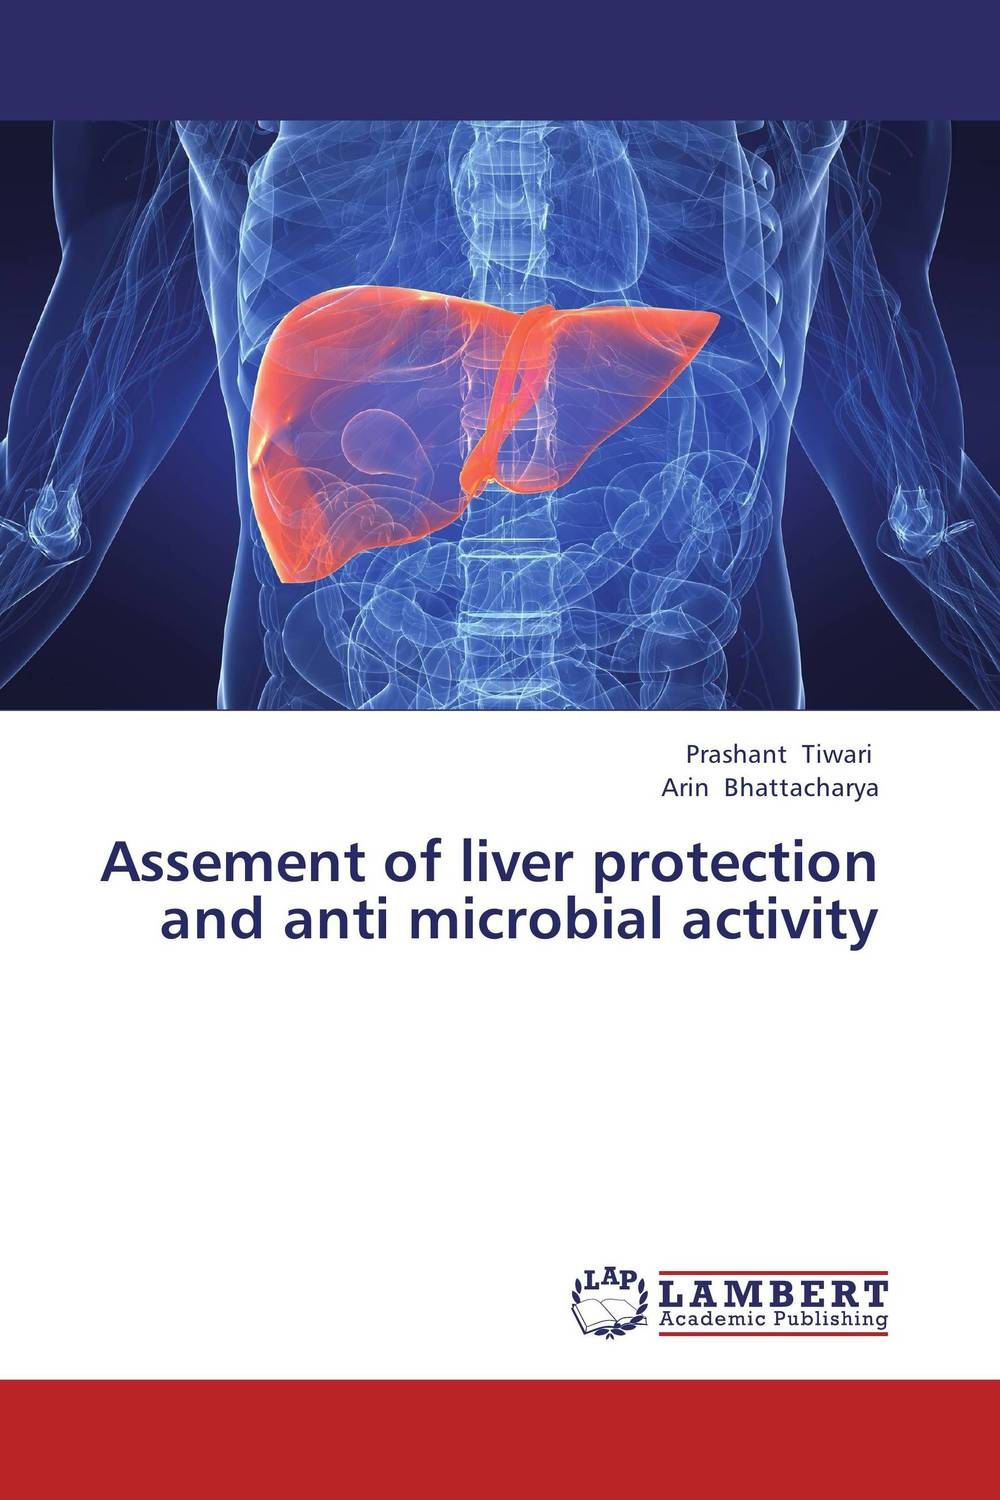 цены Assement of liver protection and anti microbial activity